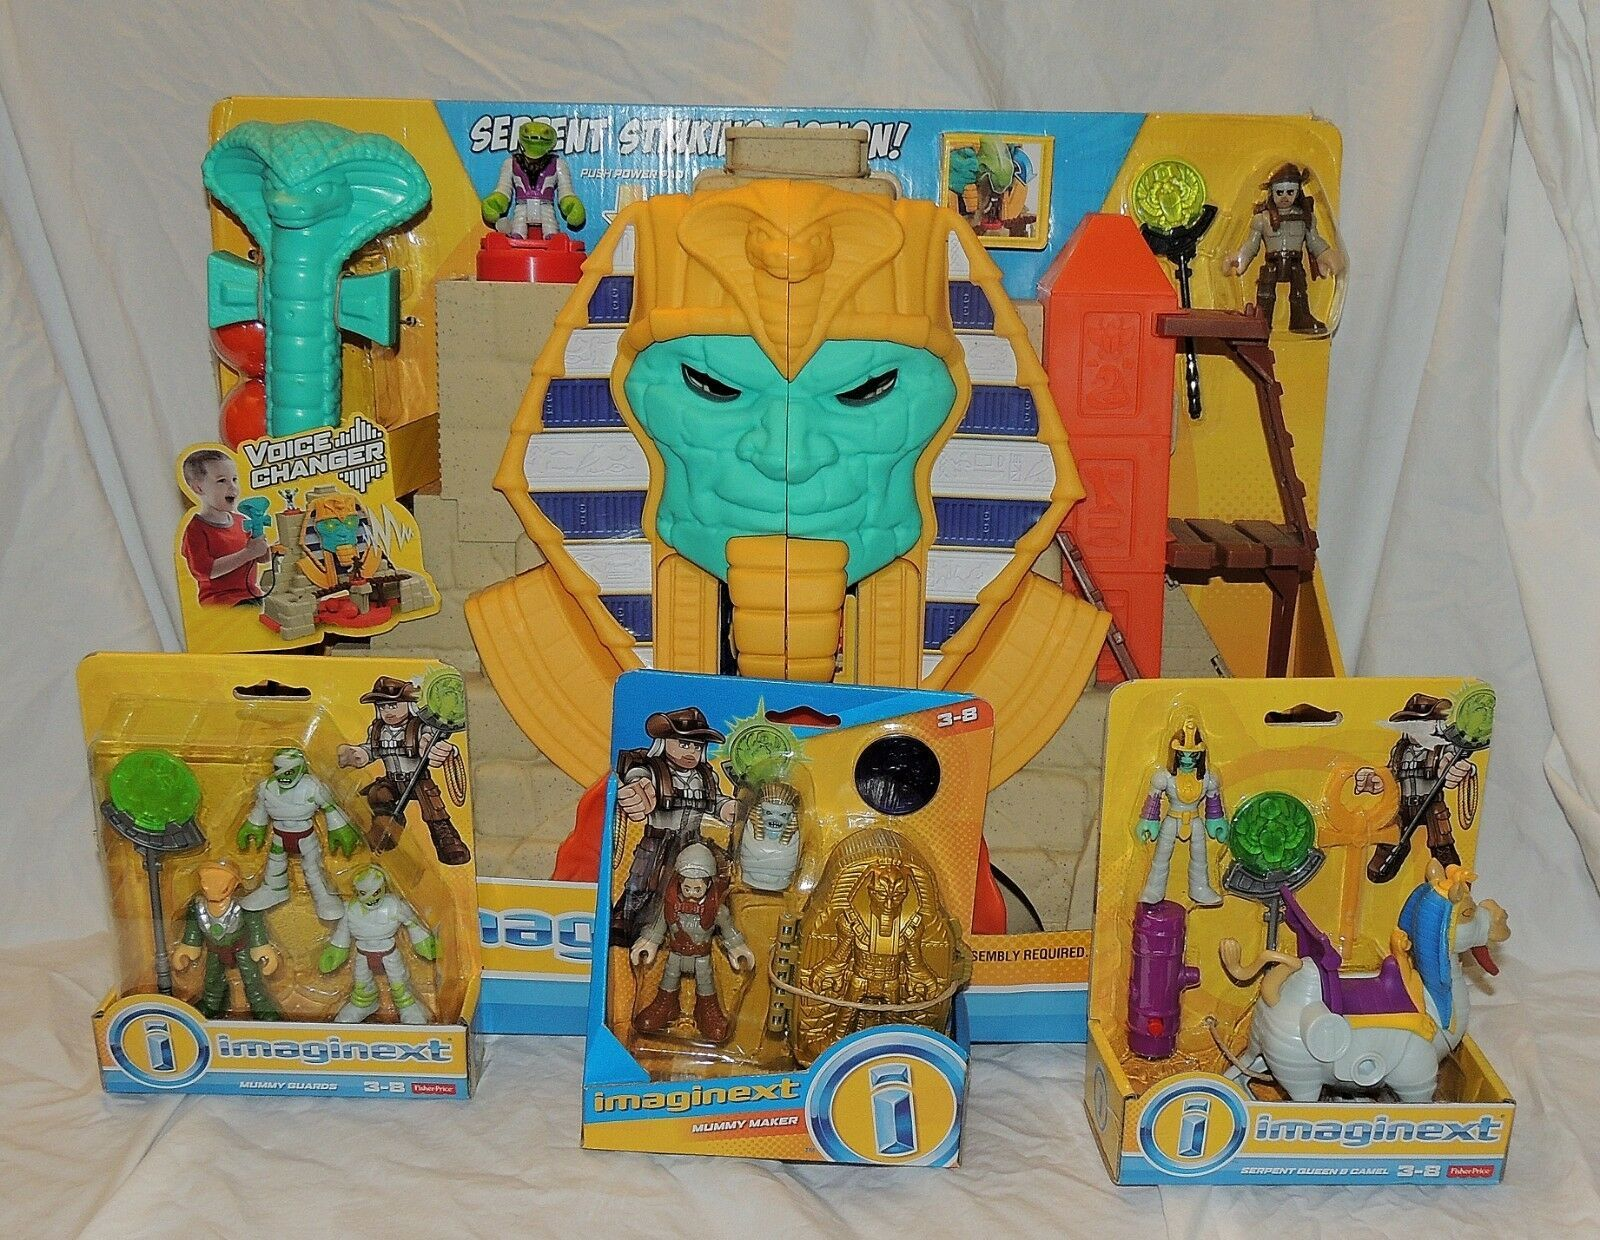 New Fisher Price Imaginext Serpent Strike Pyramid Treasure Mummy 4 Piece Queen